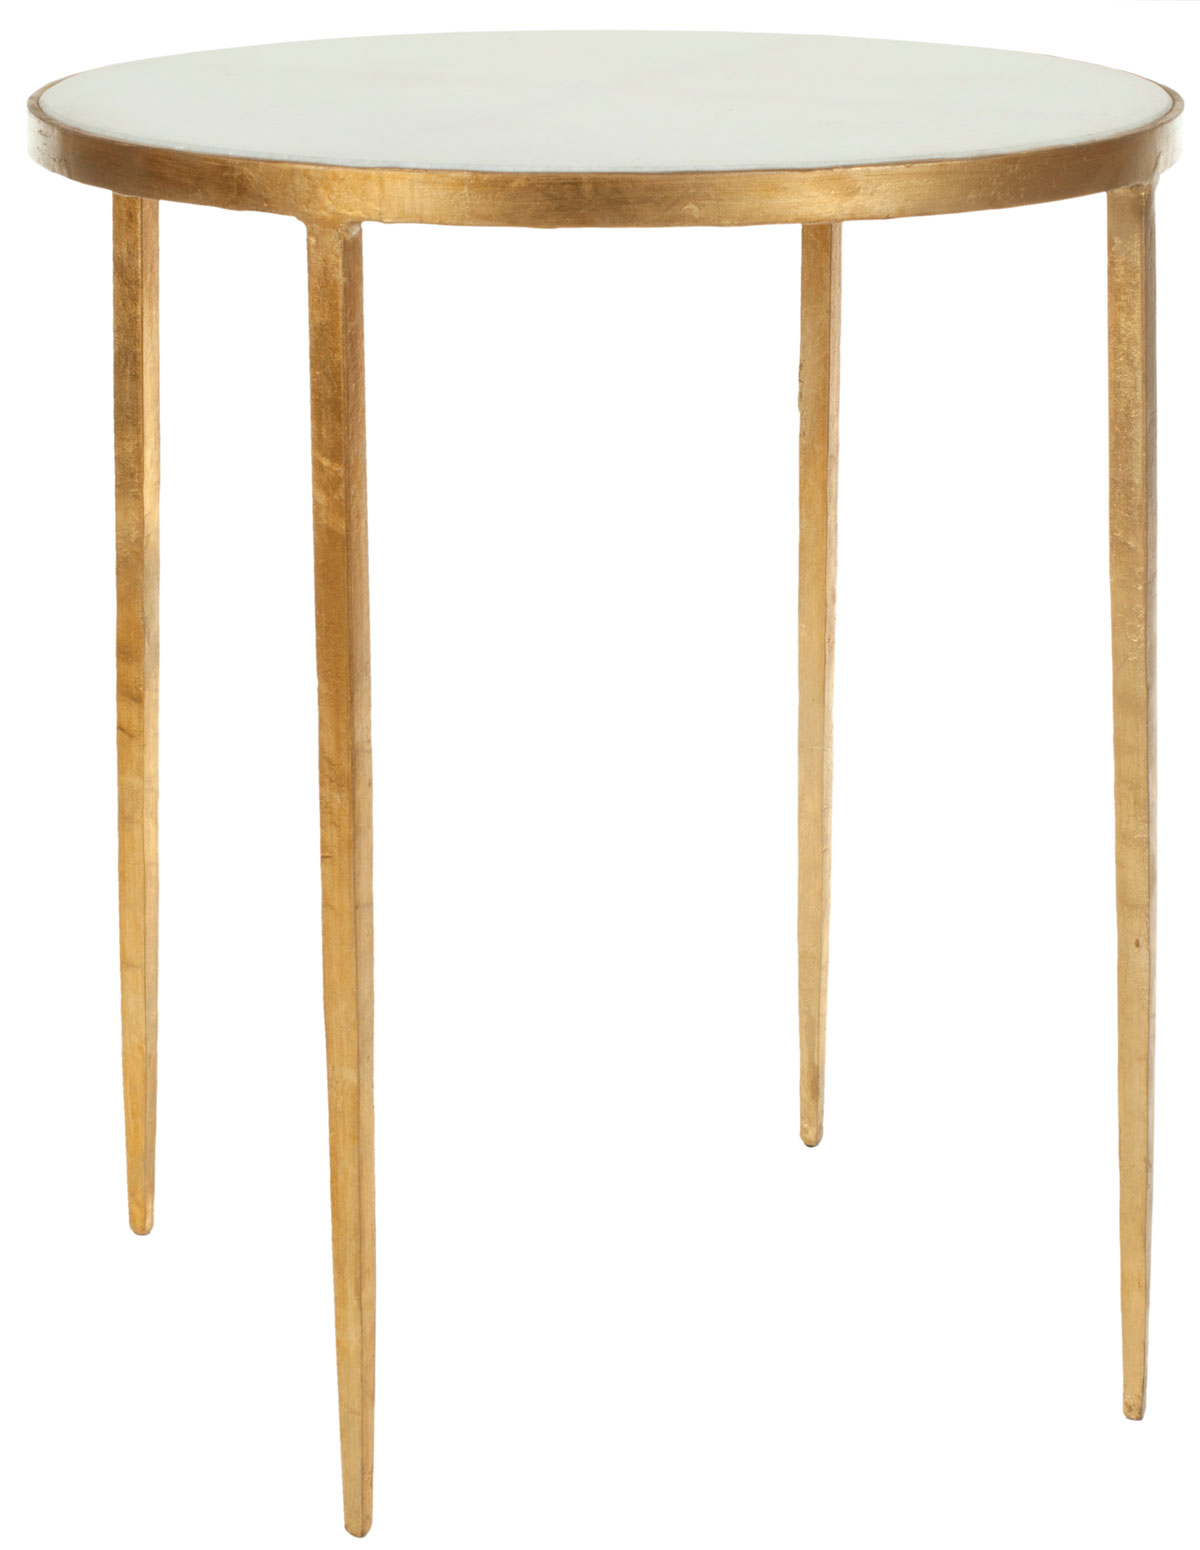 accent tables furniture safavieh front round gold table share this product cherry and black coffee wall lights lamp sets clearance big lots outside chair covers small entryway